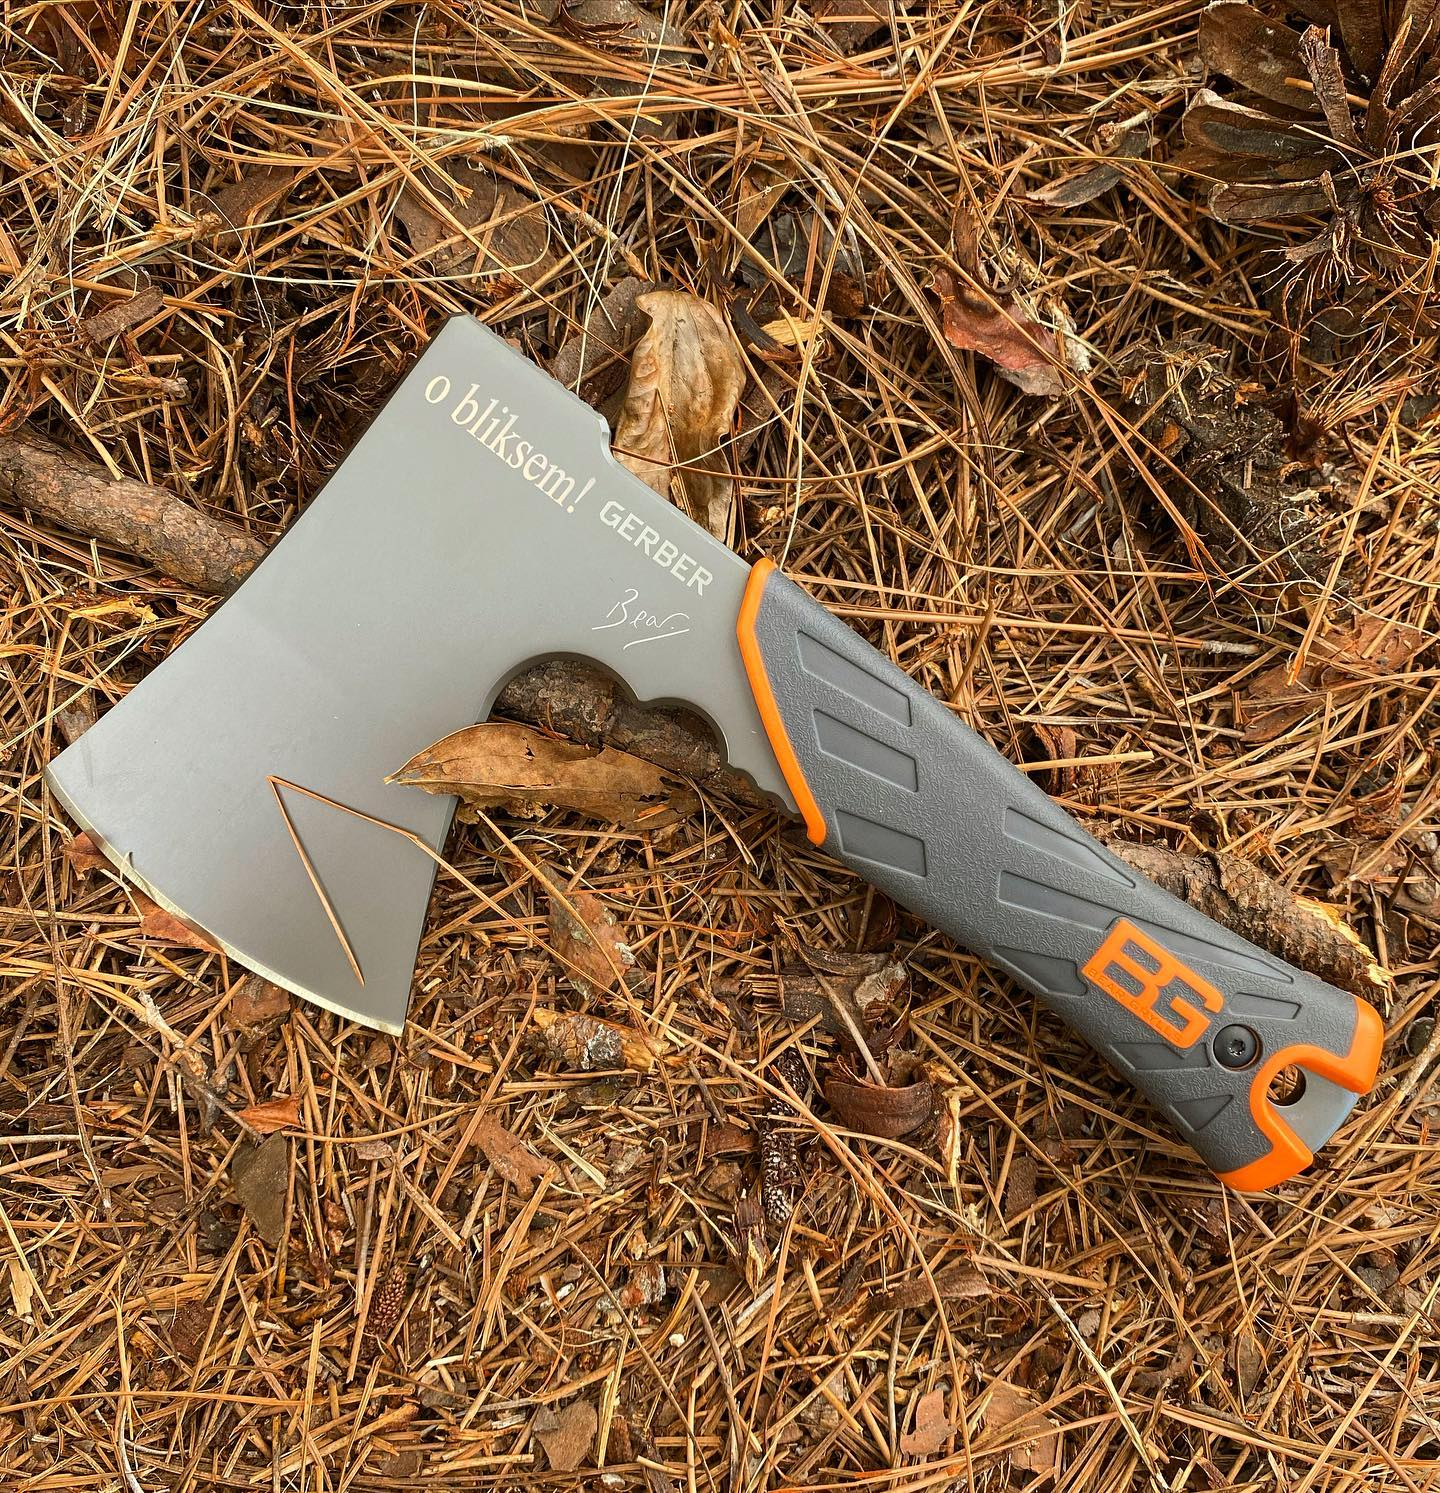 Gerber Bear Grylls Hatchet 31-002070- perfect size for your back pack. Just engraved in Times New Roman font and on its way to help this customer. #31-002070 #hatchet #beargryllshatchet